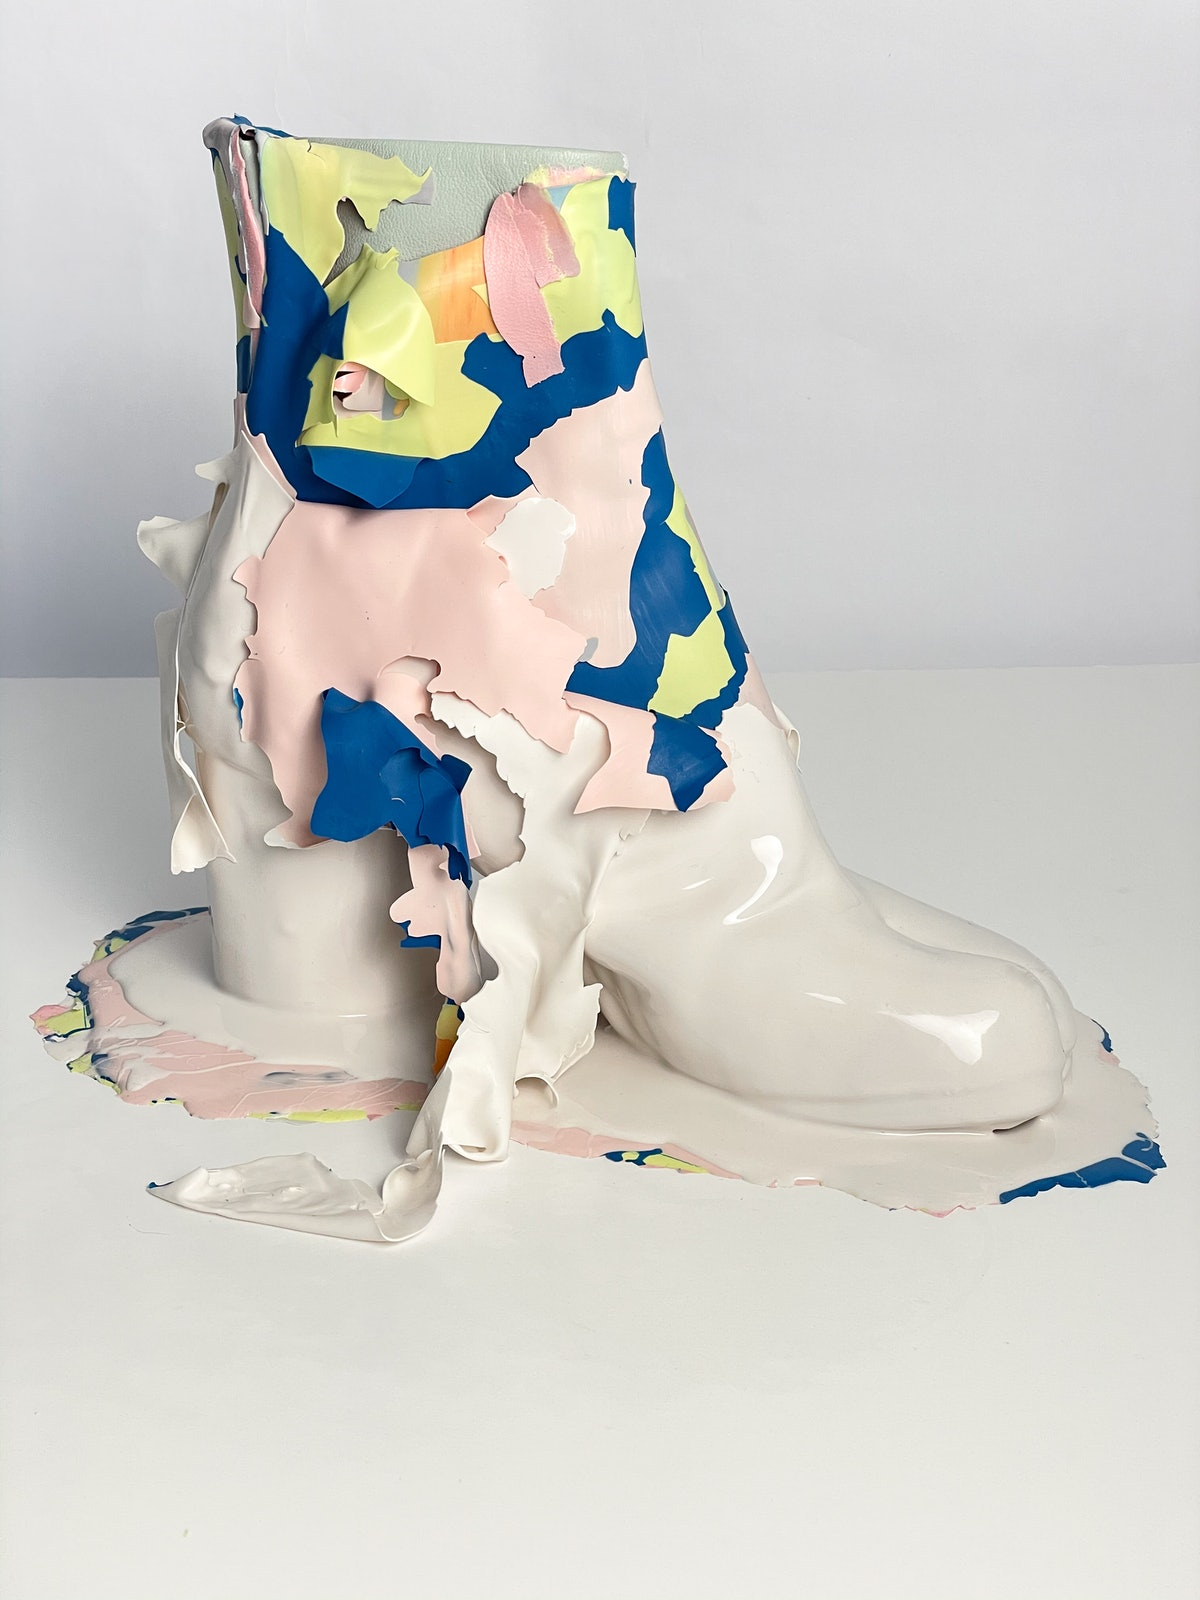 a sculpture made of a Margiela boot and silicon